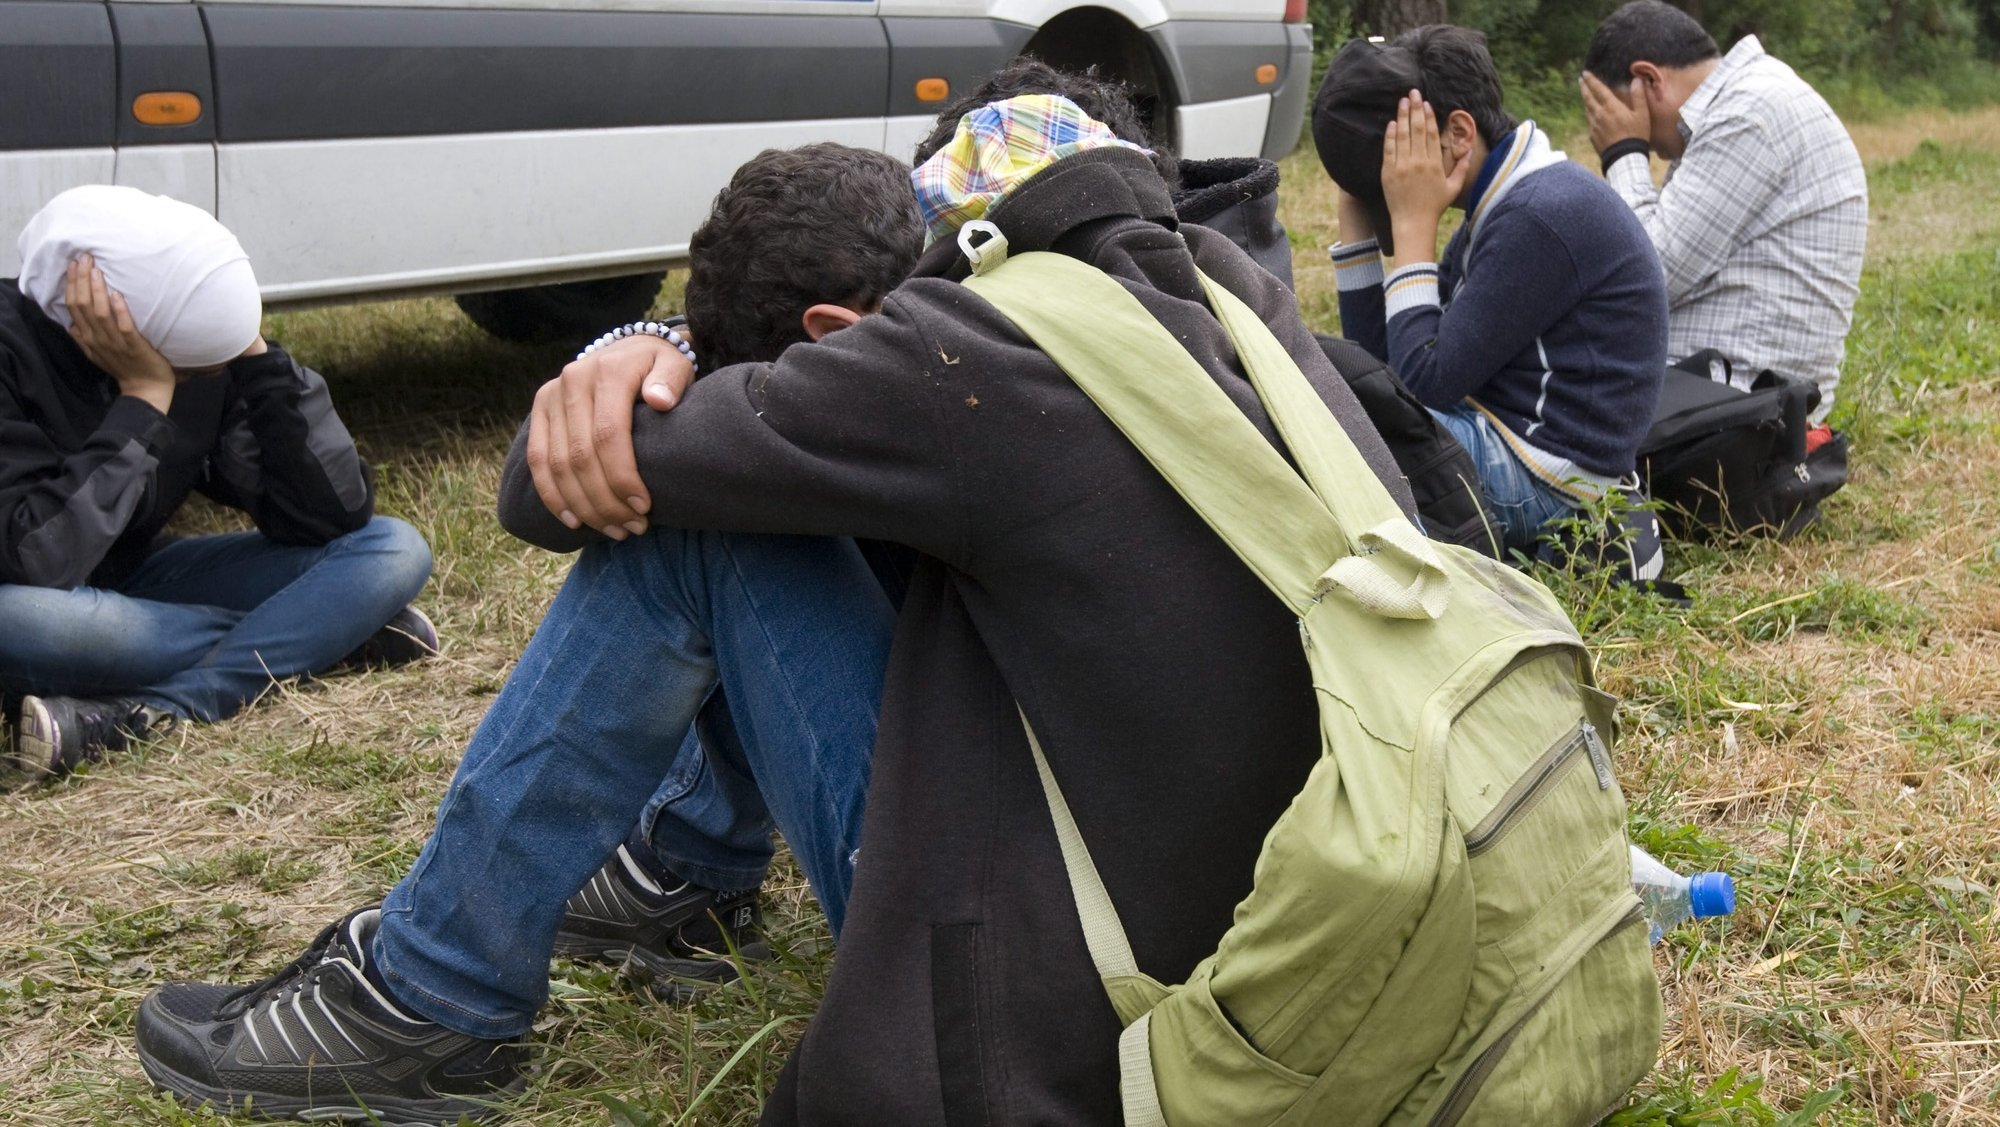 epa04814995 Migrants, who were captured on an eyot of the Tisza River, next to a police van near Szeged, 170 kms southeast of Budapest, Hungary, 23 June 2015. EU foreign ministers on 22 June launched a military mission in the Mediterranean Sea aimed at cracking down on migrant smuggling networks and dismantling the trade, as part of a broader effort to curb the loss of life. Half of the EU's 28 member states are taking part in the operation, including Belgium, Britain, Finland, France, Germany, Greece, Hungary, Italy, Lithuania, Luxembourg, the Netherlands, Slovenia, Spain and Sweden.  EPA/ZOLTAN GERGELY KELEMEN HUNGARY OUT